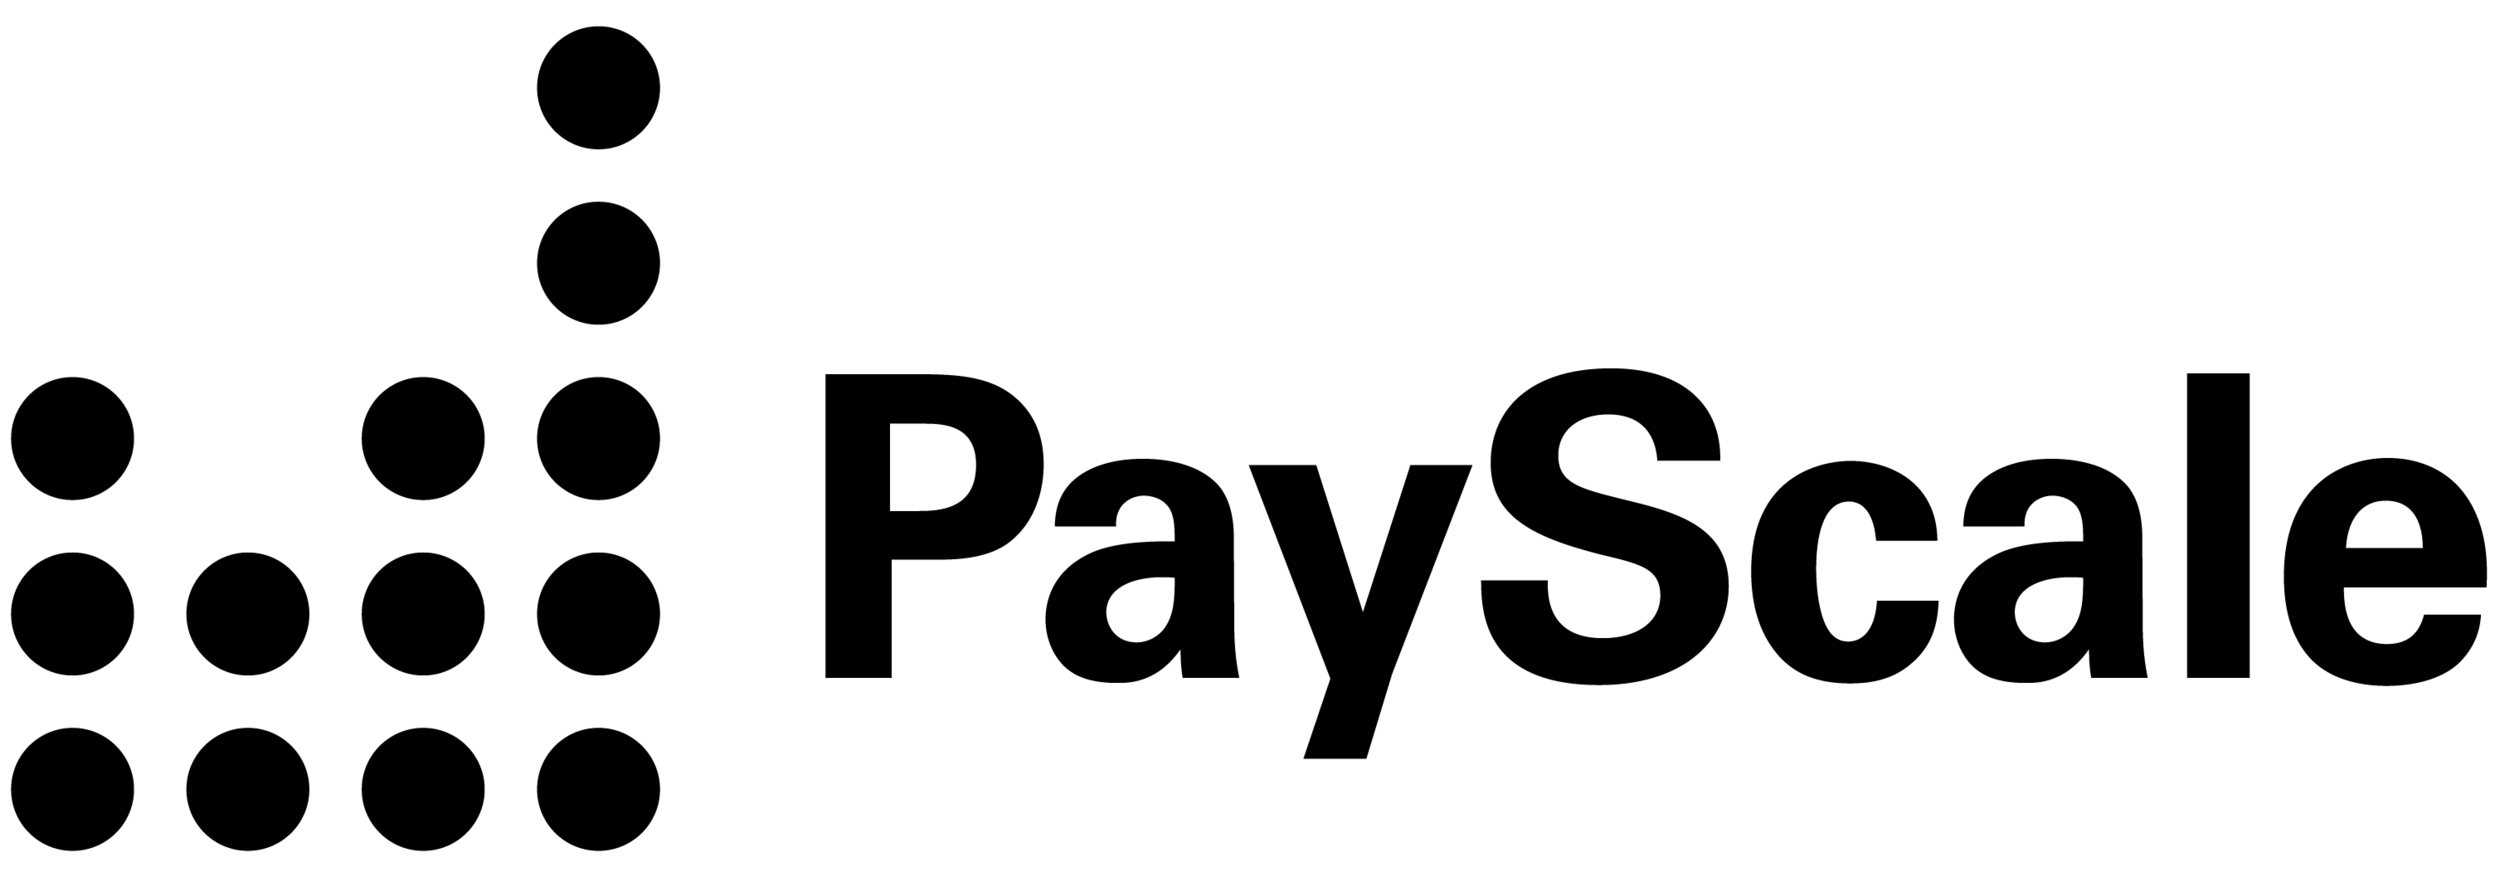 payscale_logo_black.png